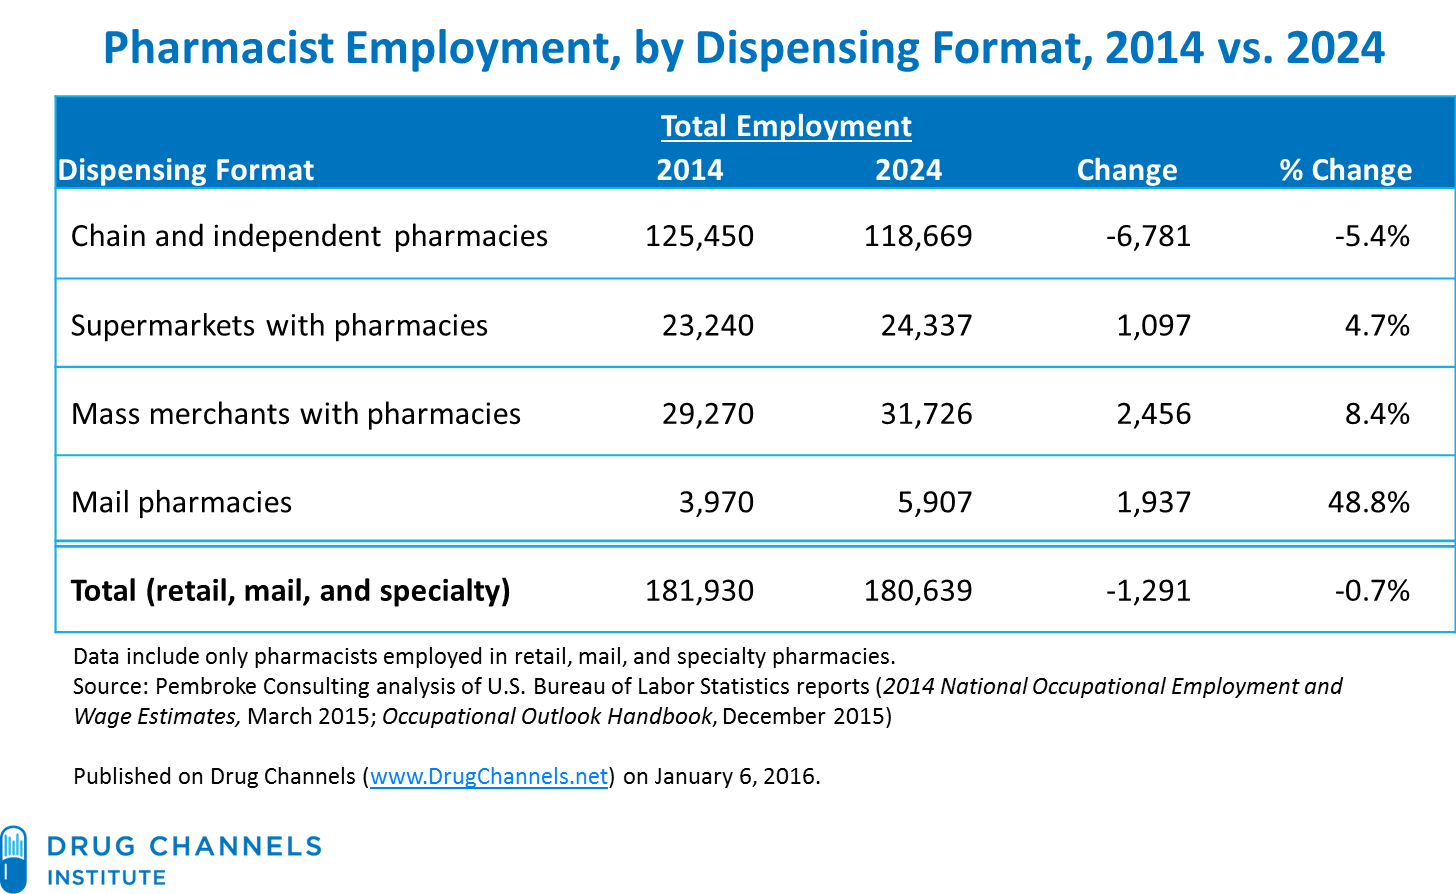 Pharmacist_Employment_by_Dispensing_Format_2014vs2024.png